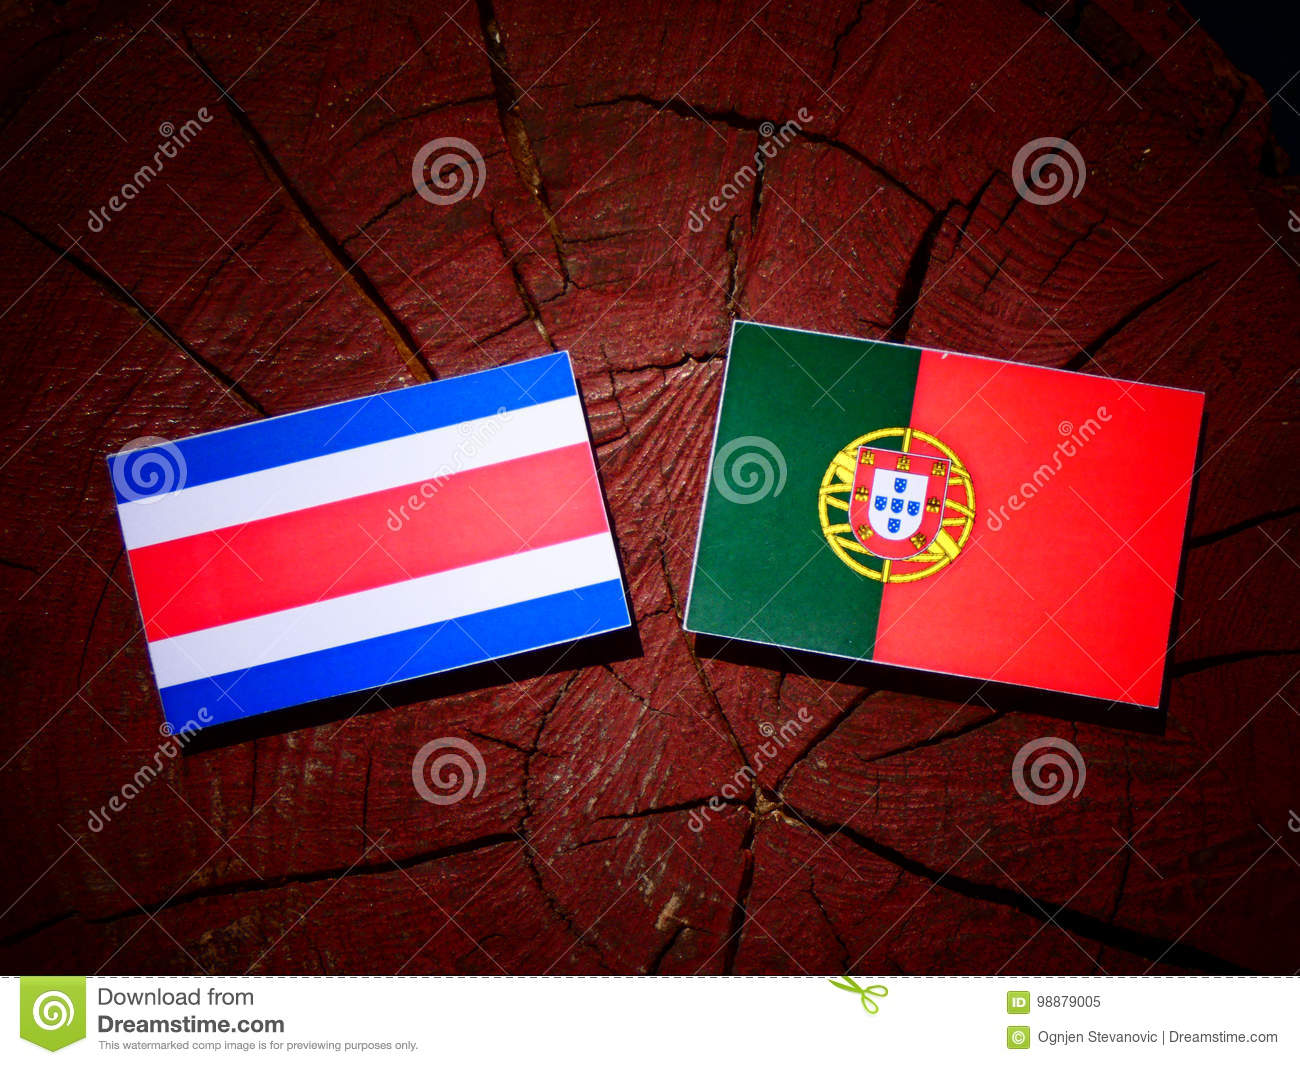 Costa Rican flag with Portuguese flag on a tree stump isolated